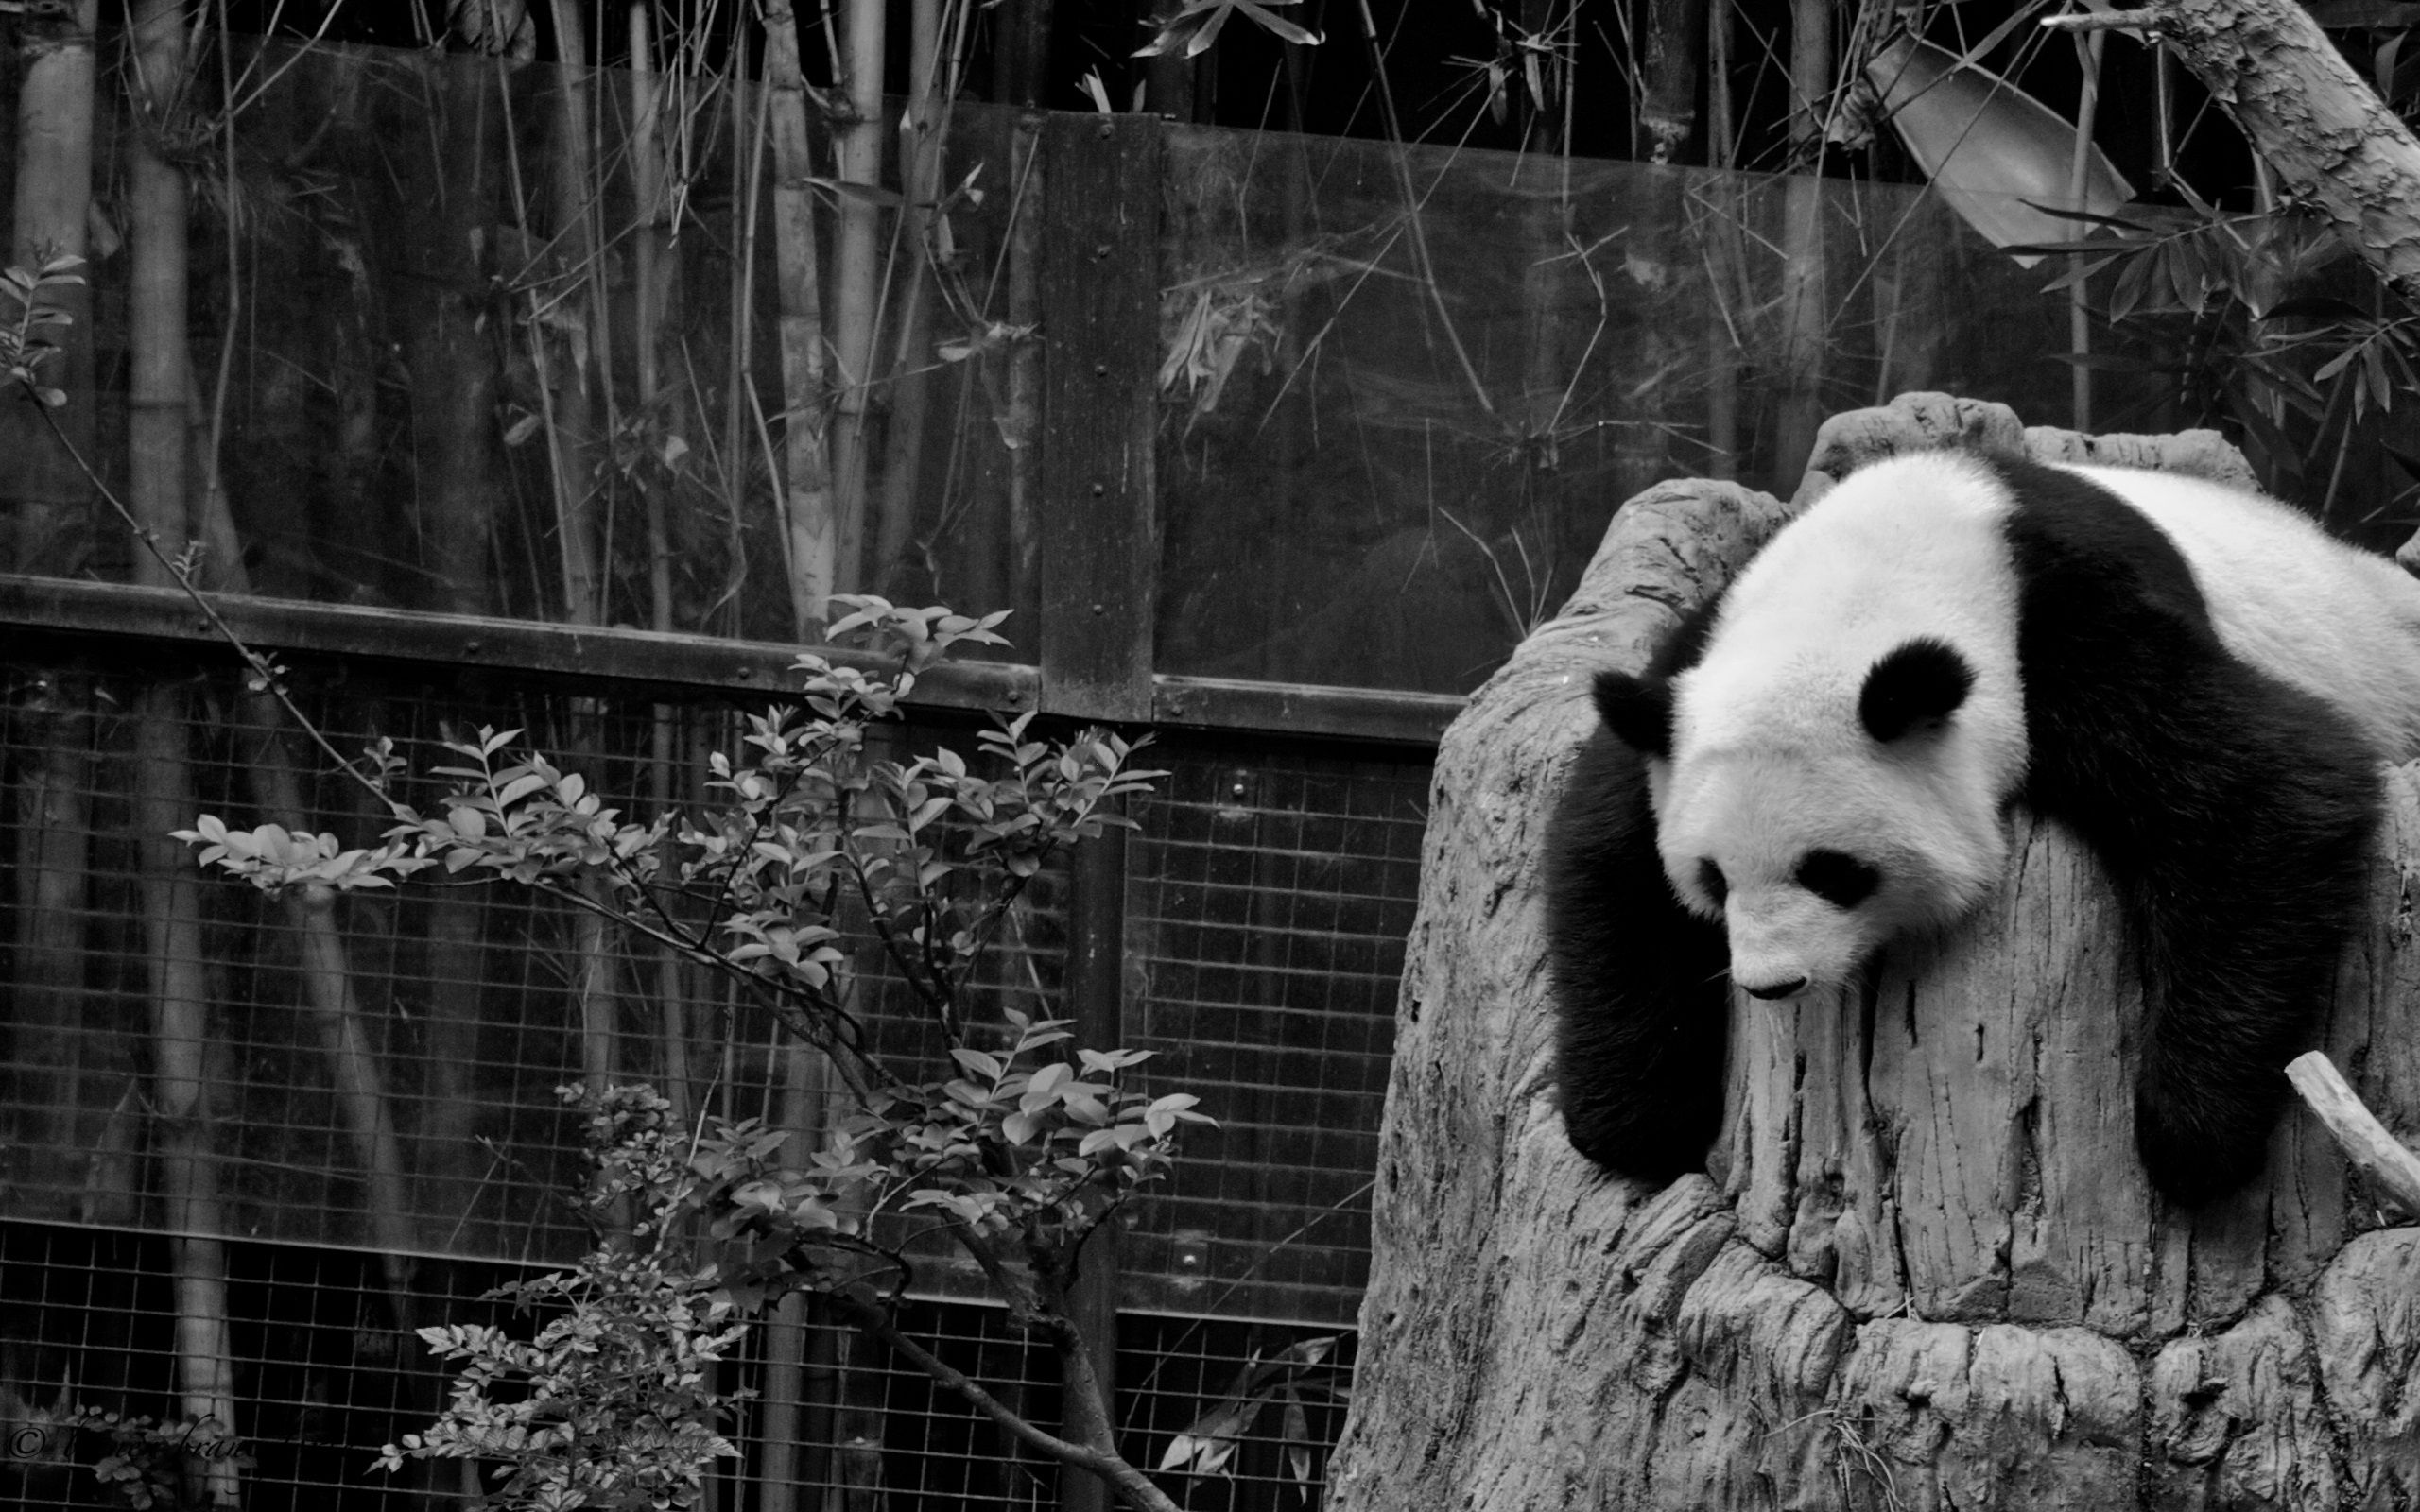 144767 download wallpaper Animals, Panda, Sleep, Dream, Reserve, Hollow, Bw, Chb screensavers and pictures for free